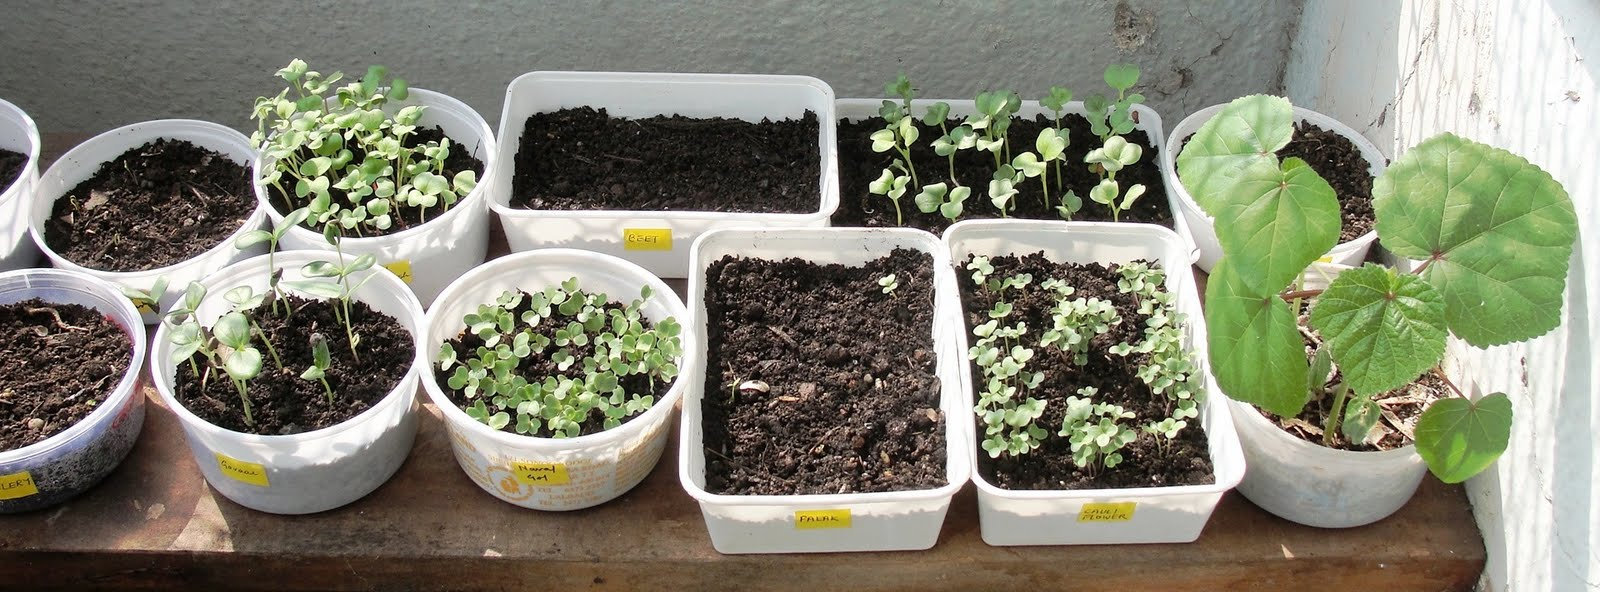 Urban leaves india 5 seeds to sow from your kitchen cupboard for Terrace kitchen garden ideas